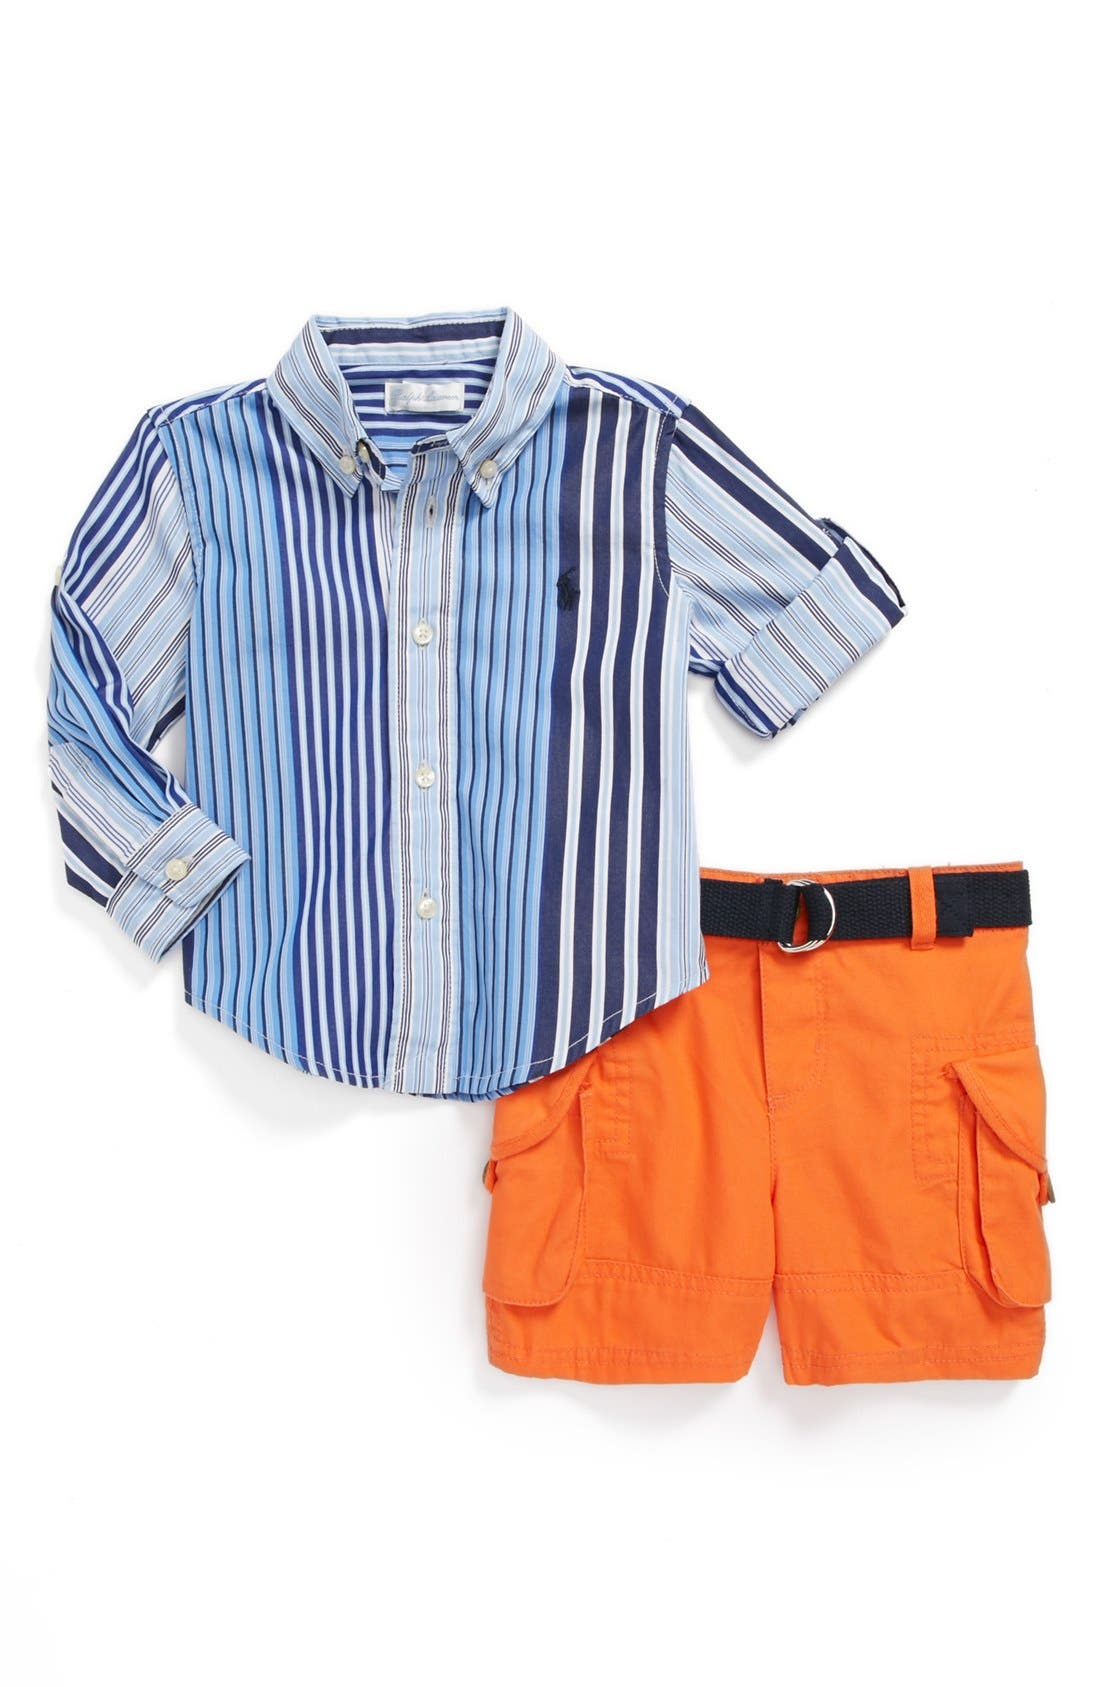 Alternate Image 1 Selected - Ralph Lauren Stripe Shirt & Cargo Shorts (Baby Boys)